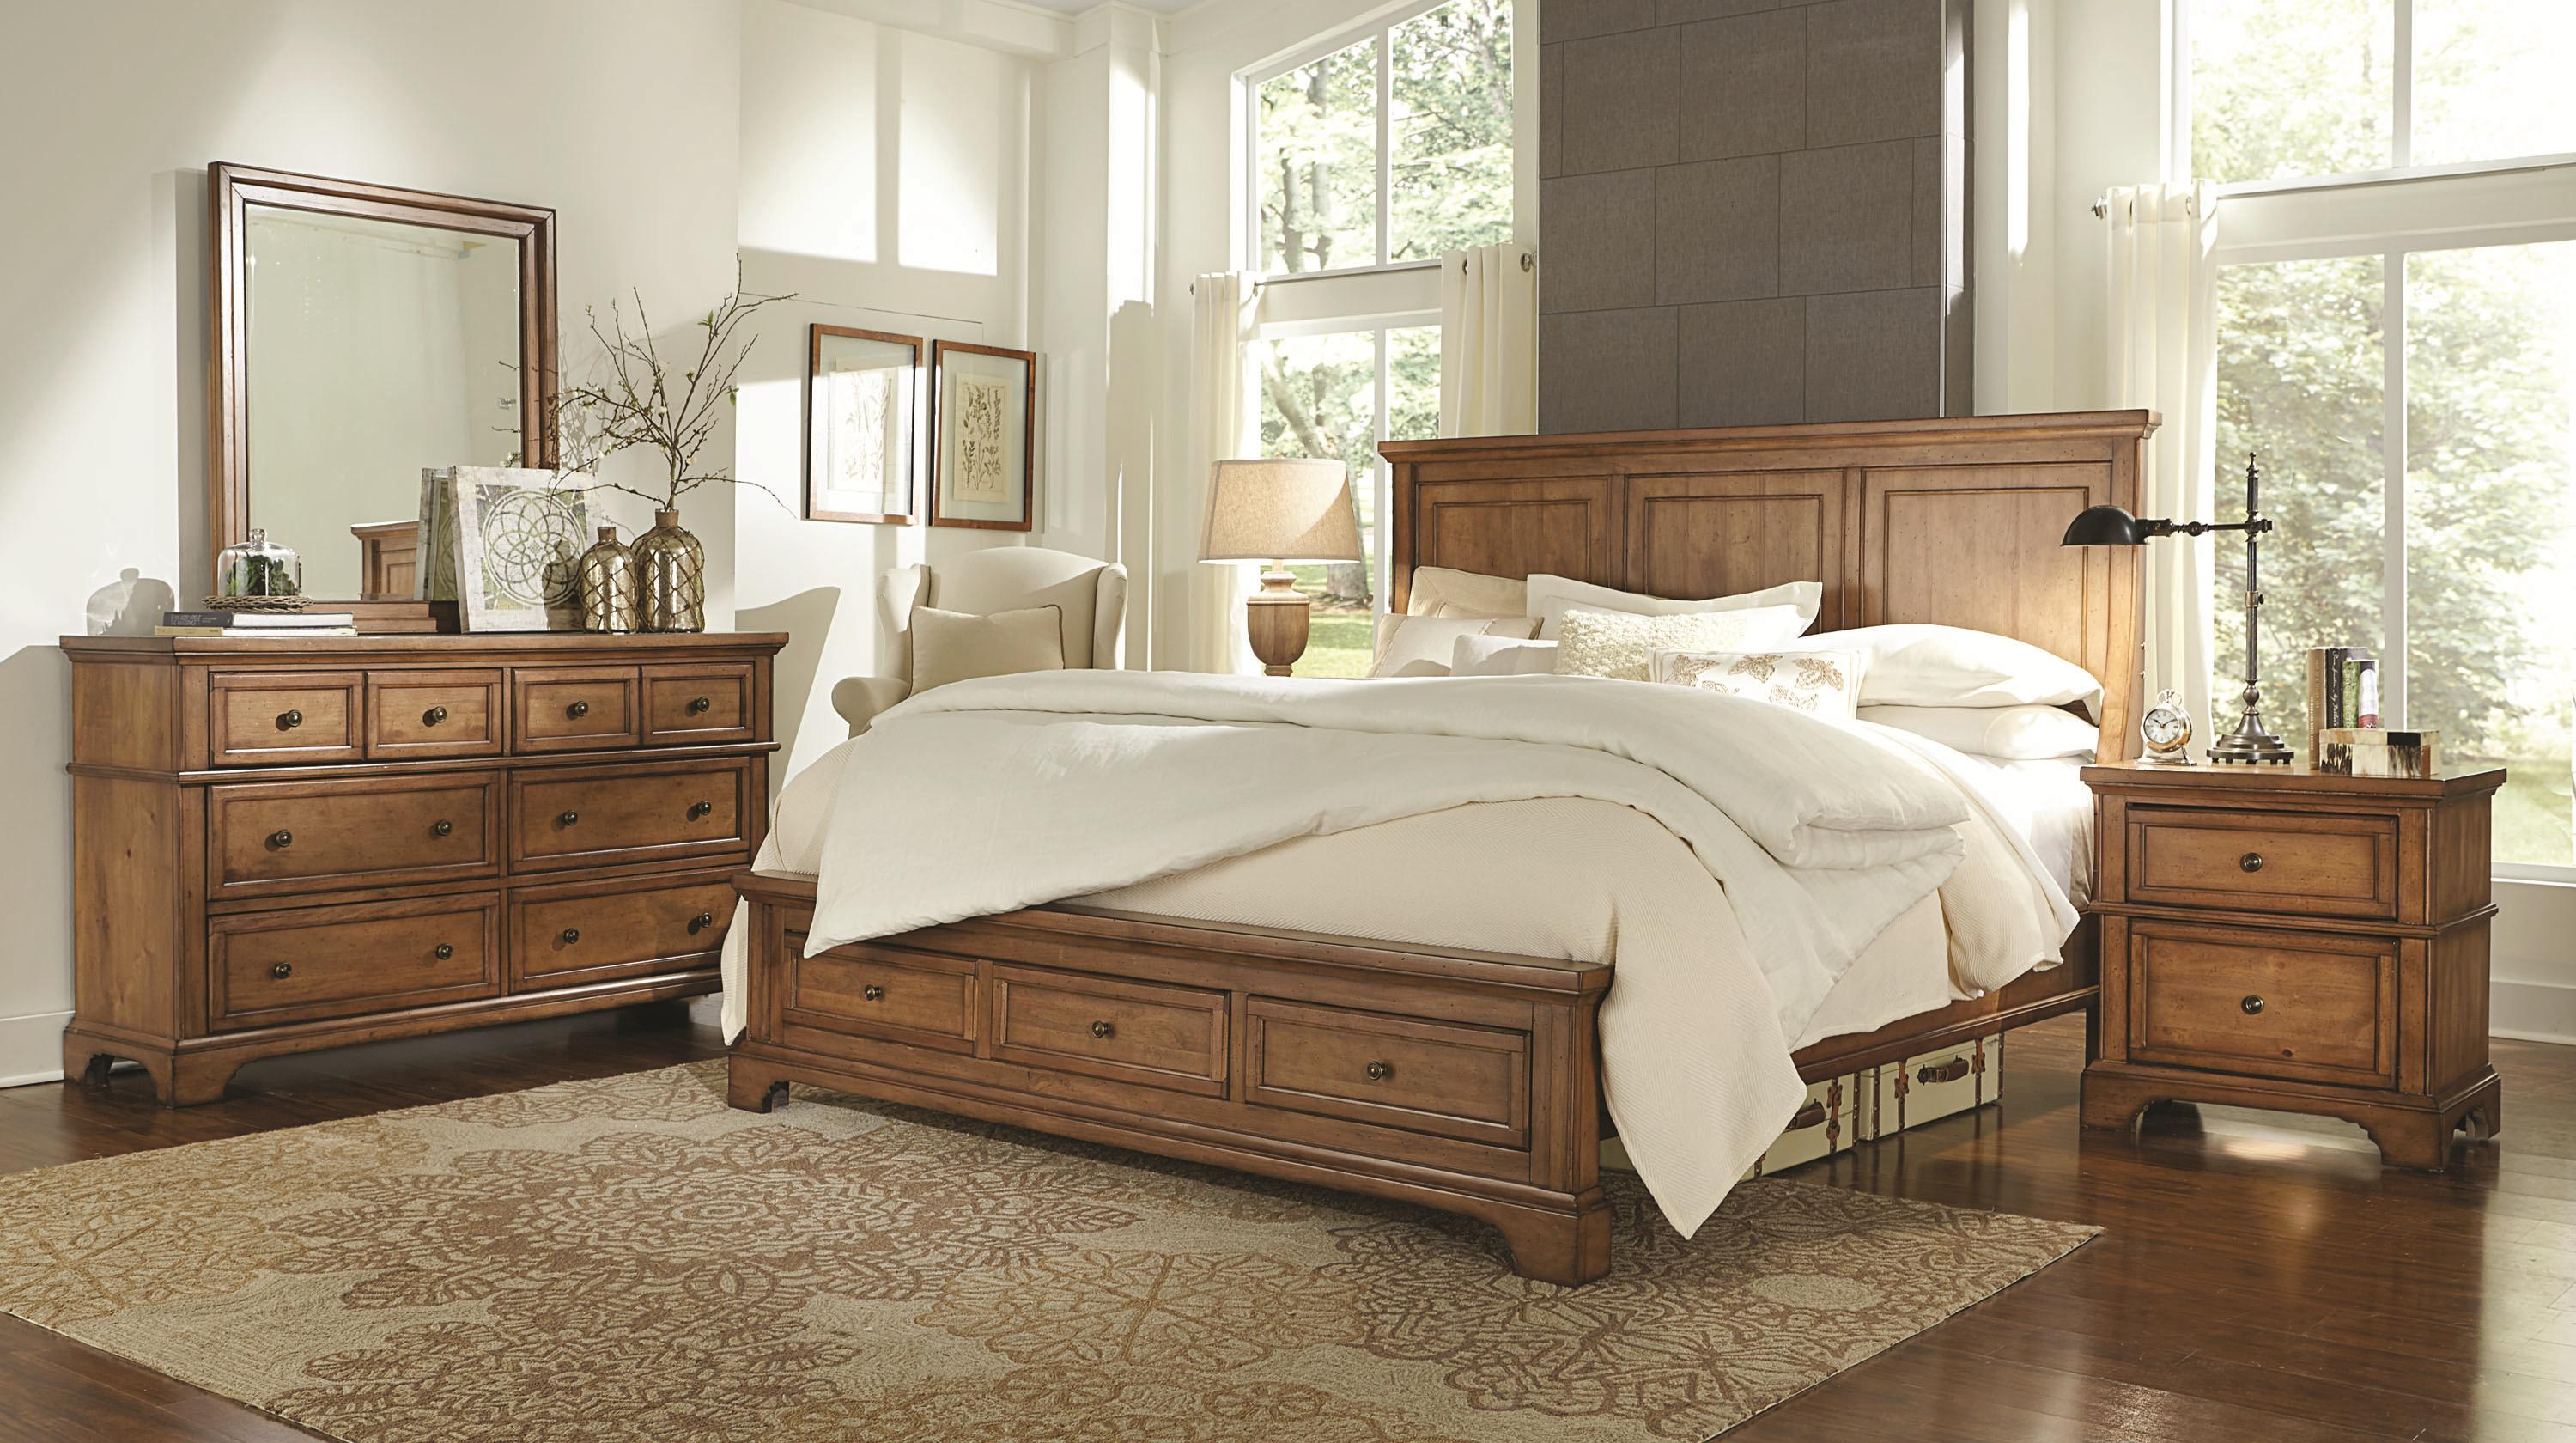 Aspenhome Alder Creek Queen Bedroom Group 2 - Item Number: I09 Q Bedroom Group 2